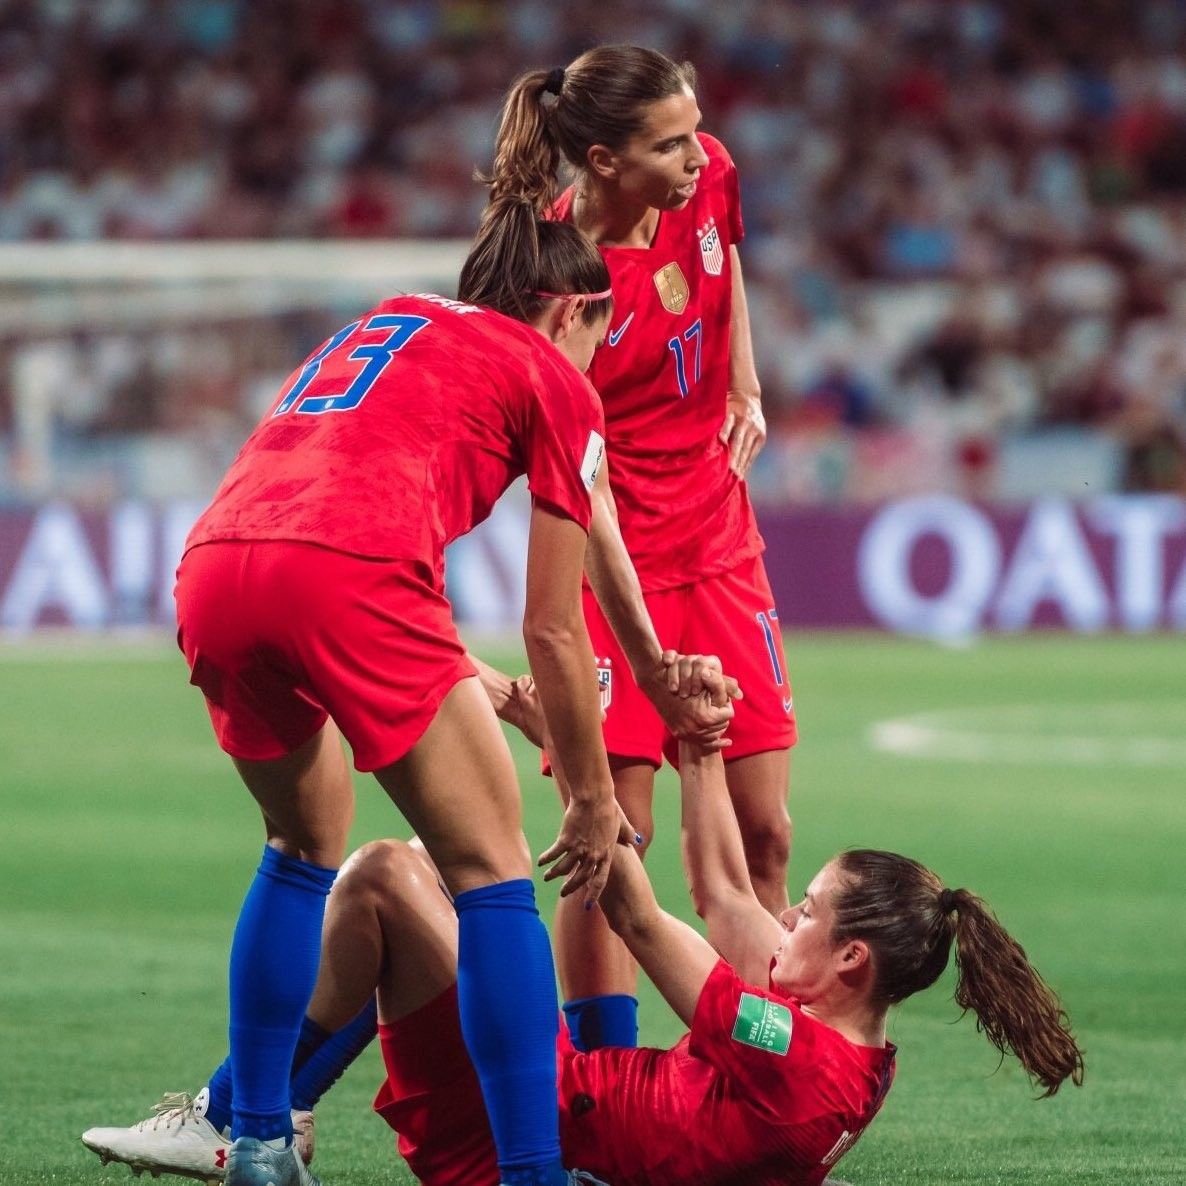 Pin By Dahy Garay On Uswnt In 2020 Women S Soccer Team Uswnt Uswnt Soccer